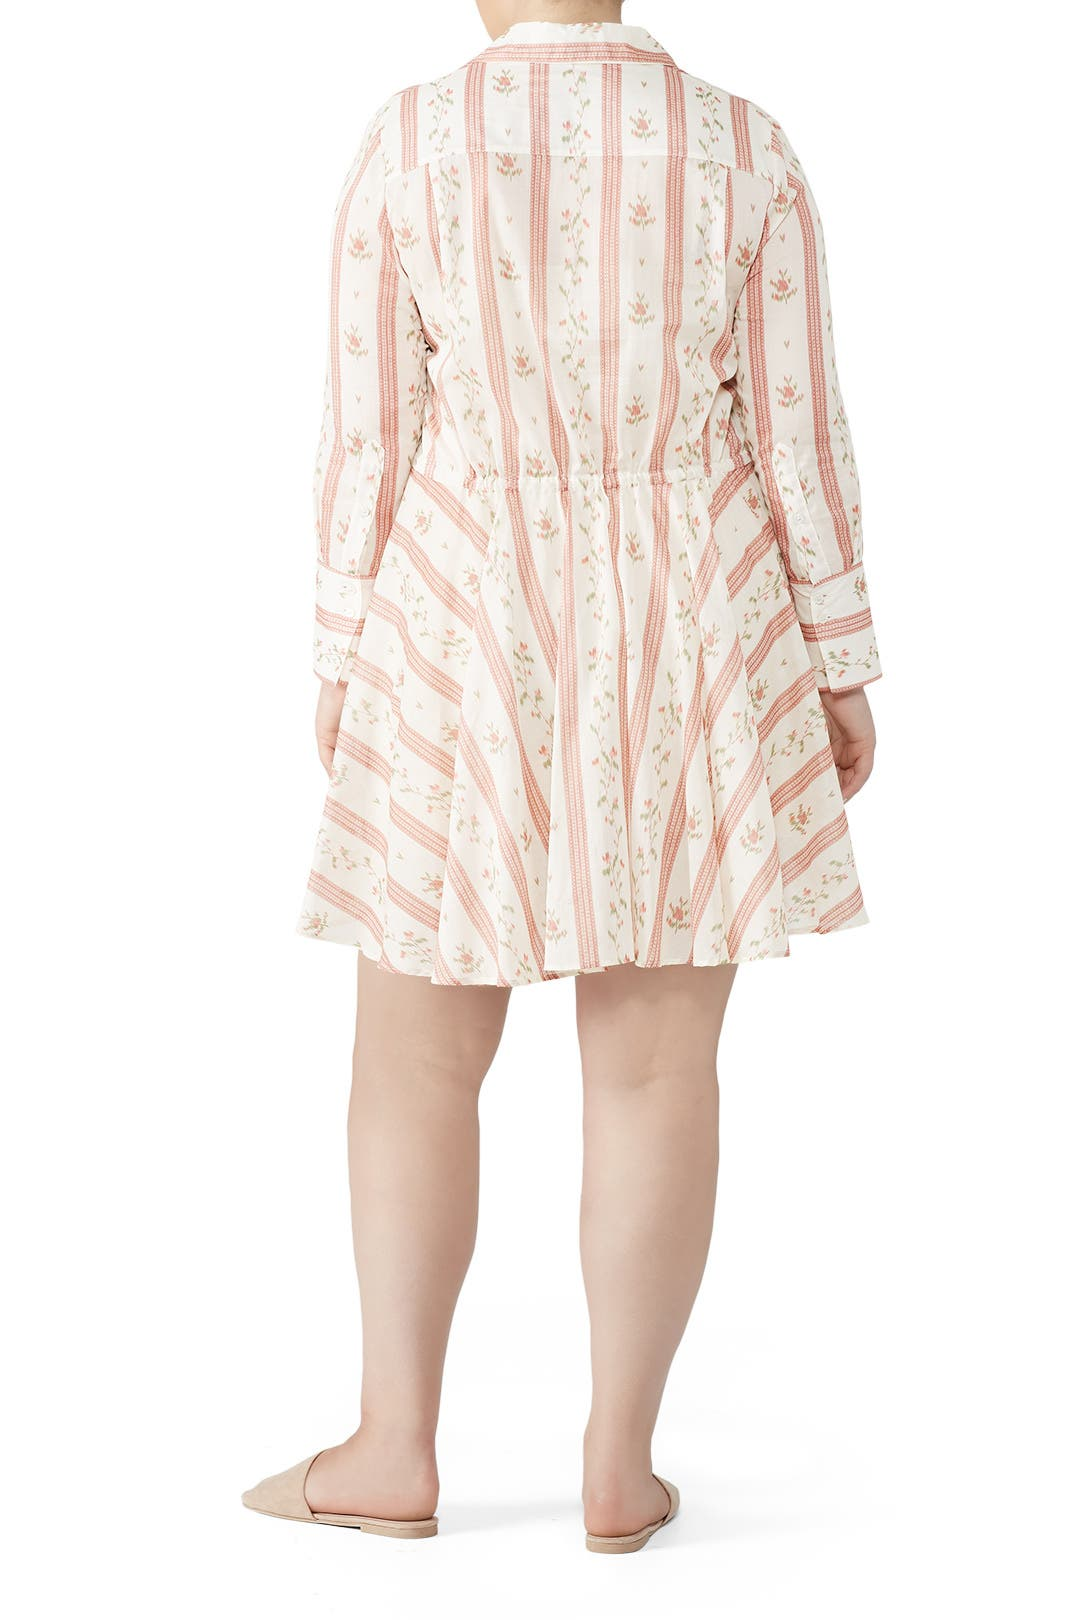 9116419346dfd Oruy Floral Shirtdress by Brock Collection for $205 | Rent the Runway